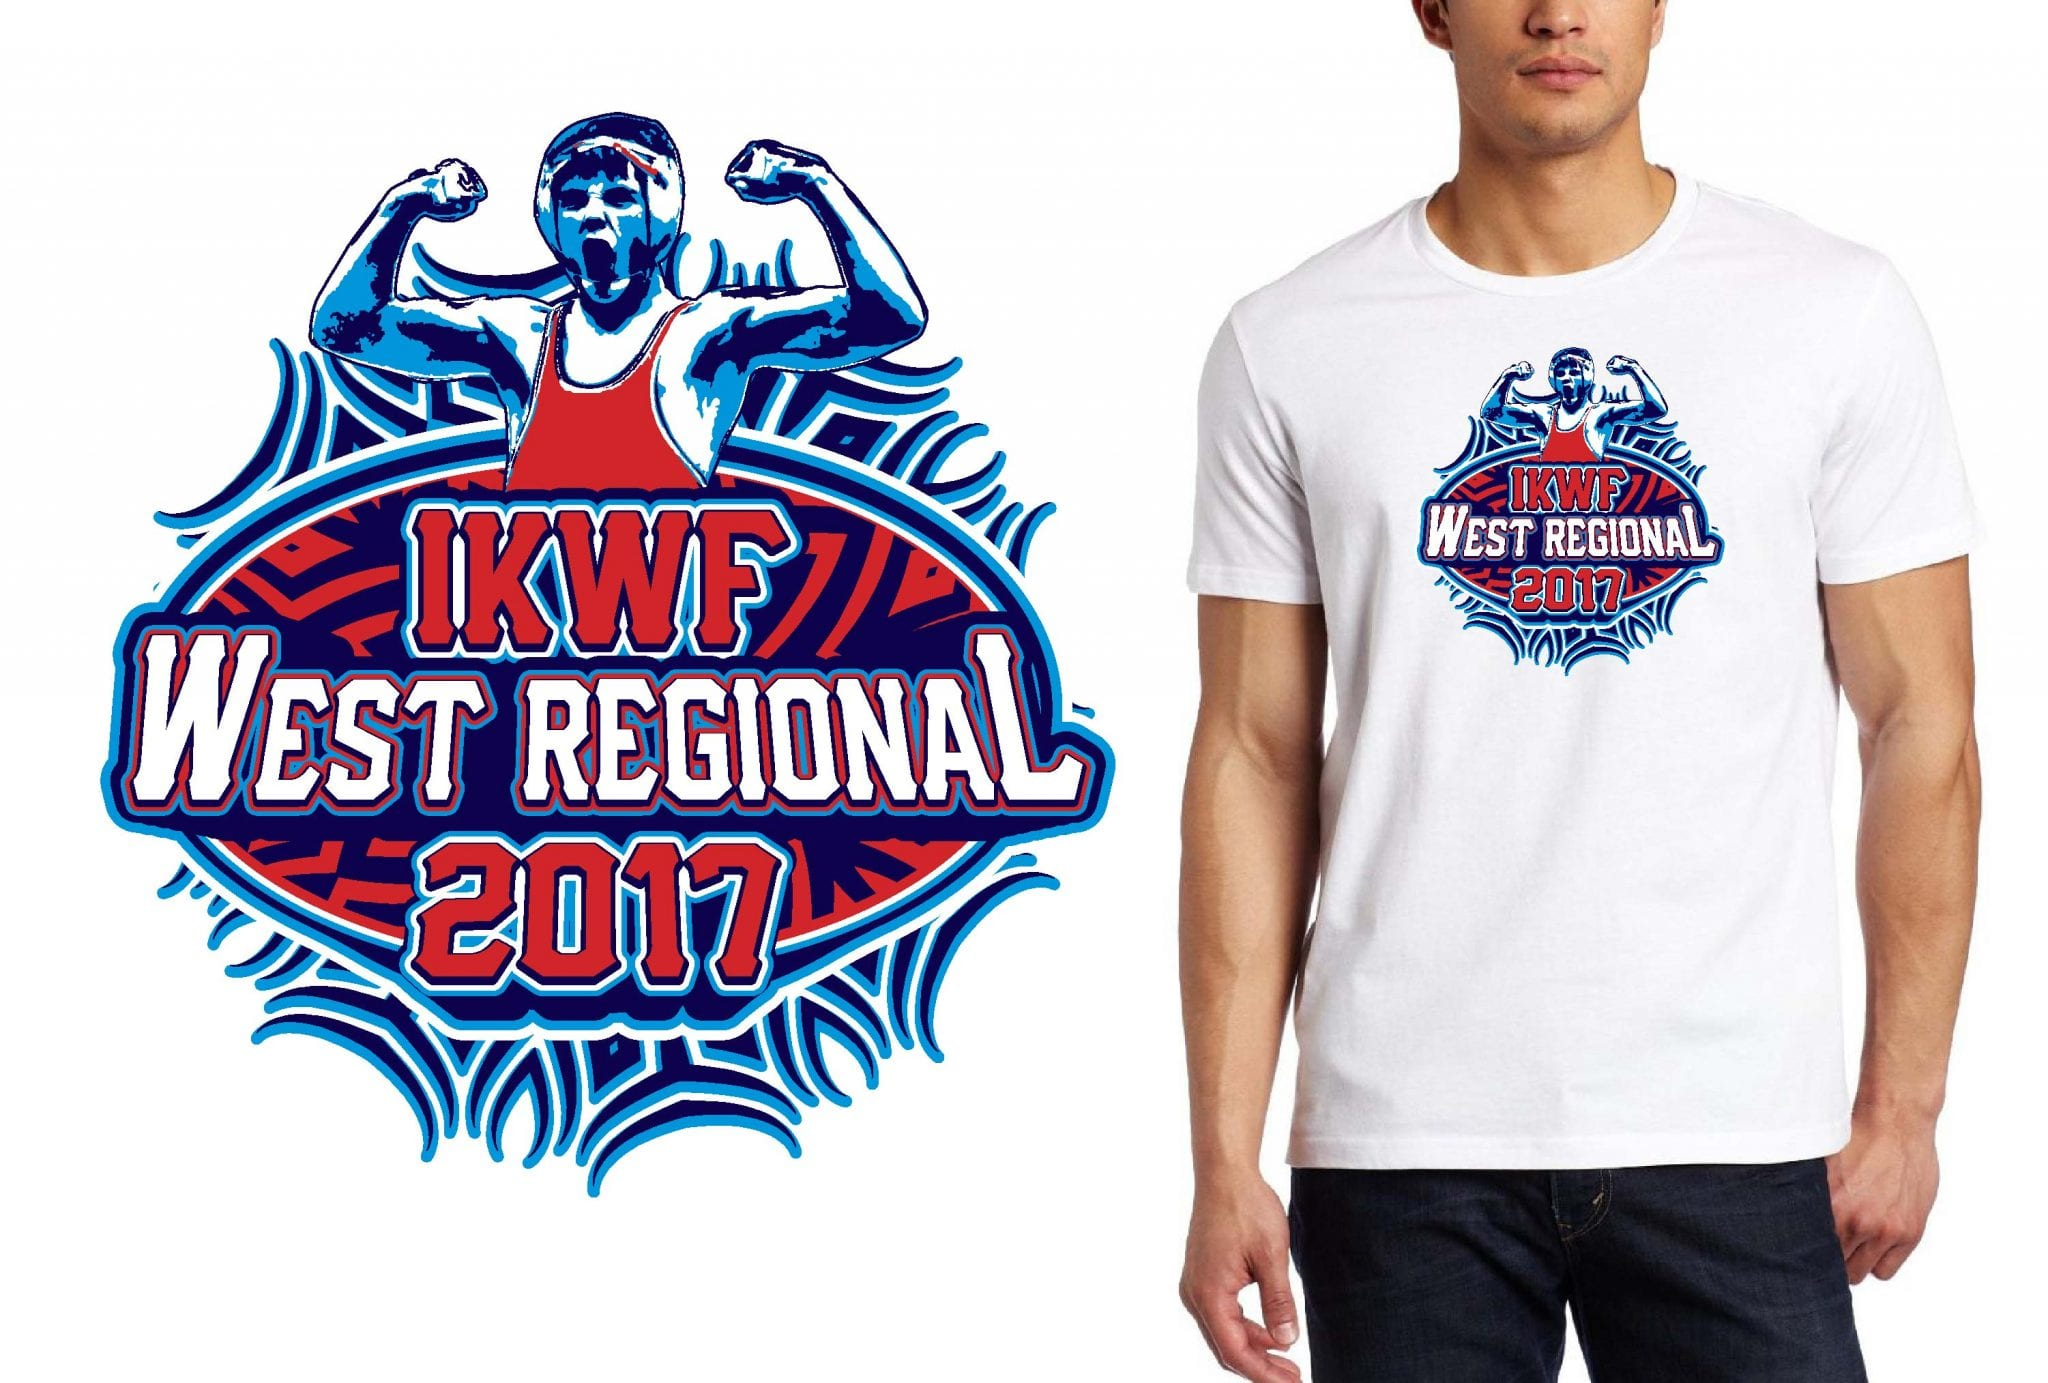 WRESTLING T SHIRT LOGO DESIGN IKWF-West-Regional BY UrArtStudio